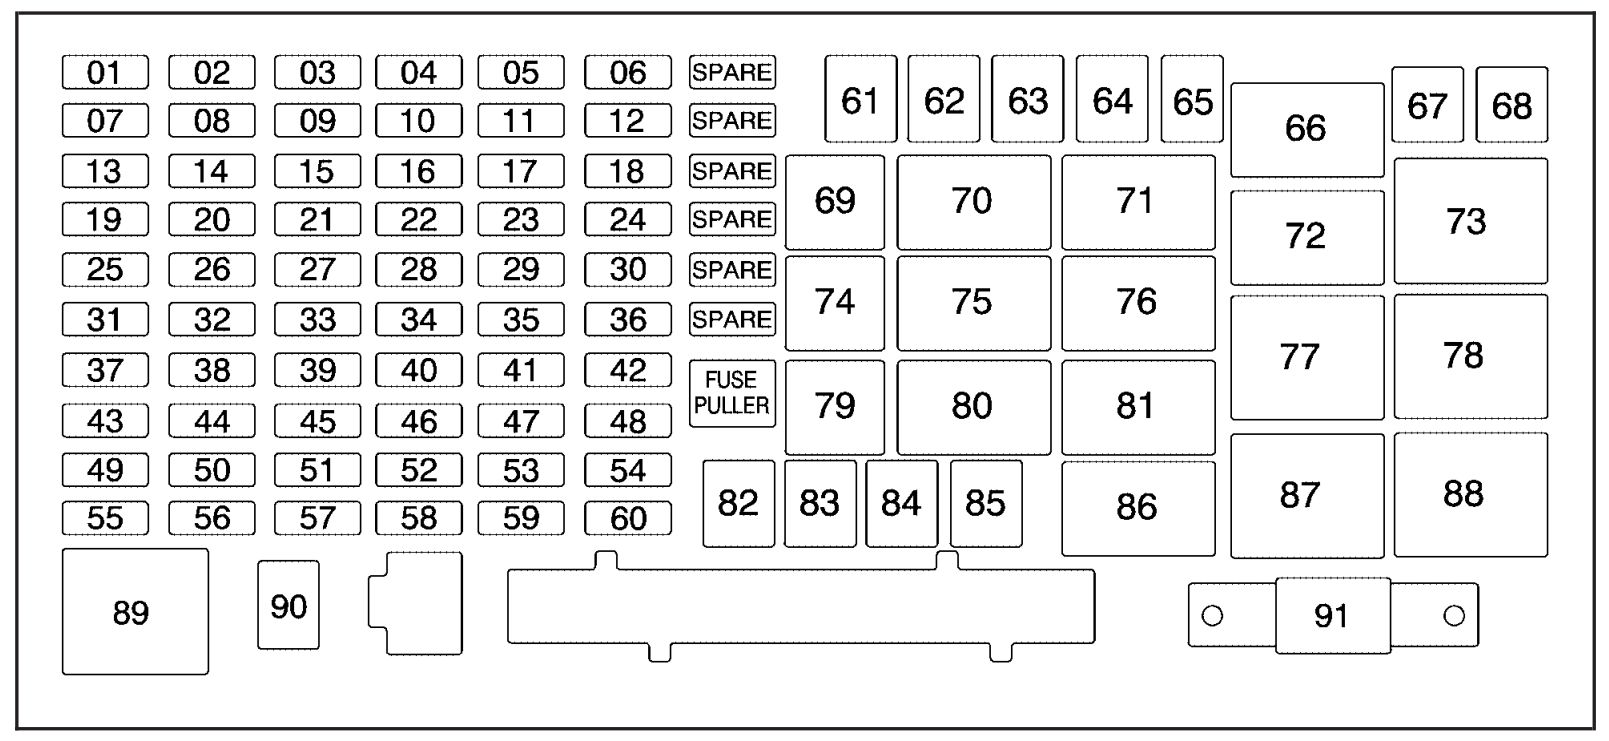 Ac Wiring Diagram Hummer H3 2007 Fuse Box Diagram Carknowledge